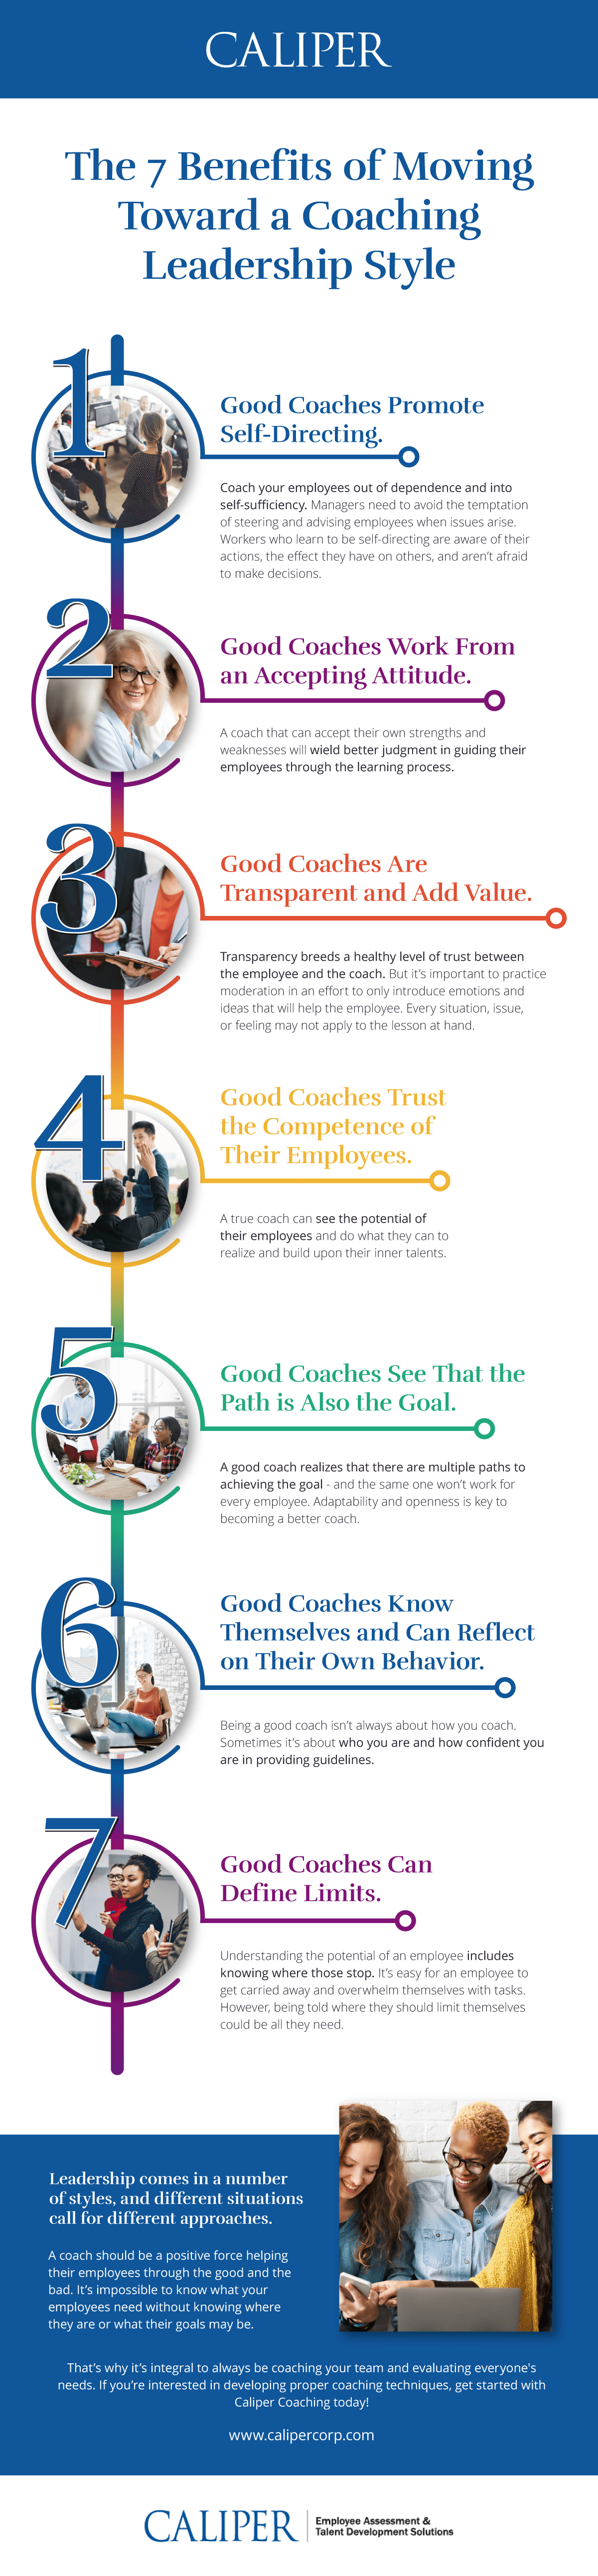 The-7-Benefits-of-Moving-Toward-a-Coaching-Leadership-Style-infographic